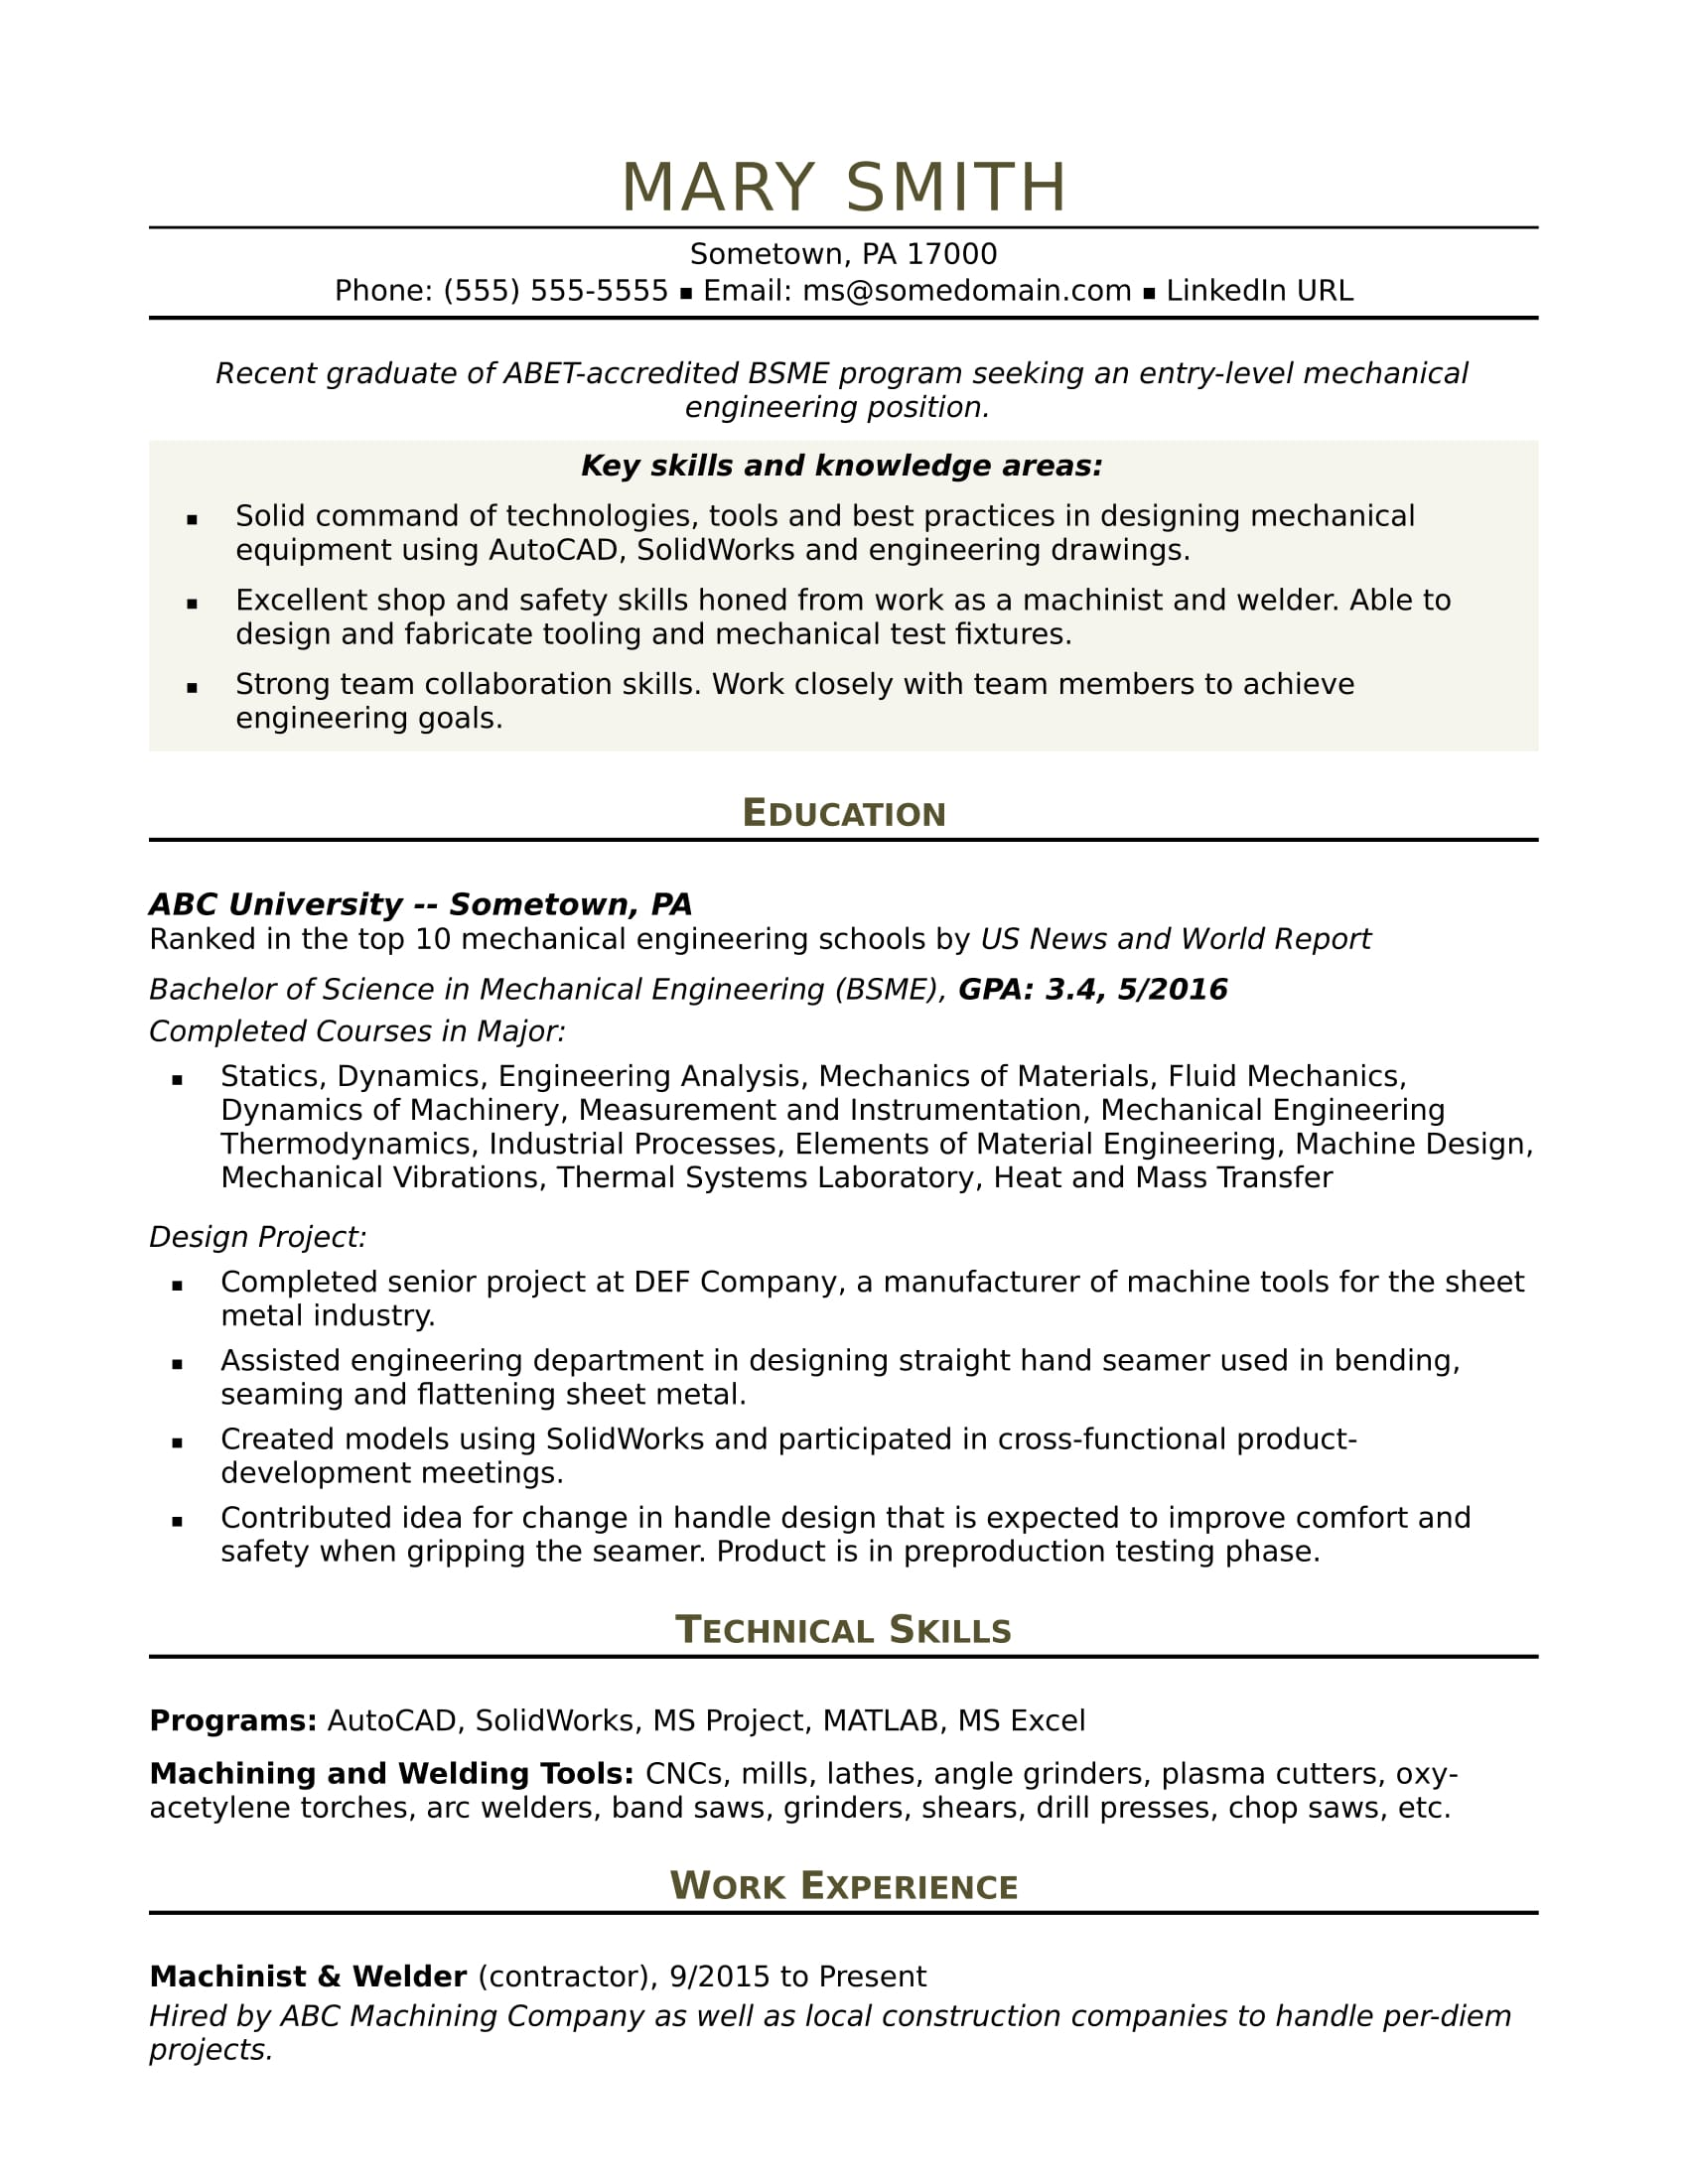 Sample Resume For An Entry Level Mechanical Engineer  Sample Resume Template